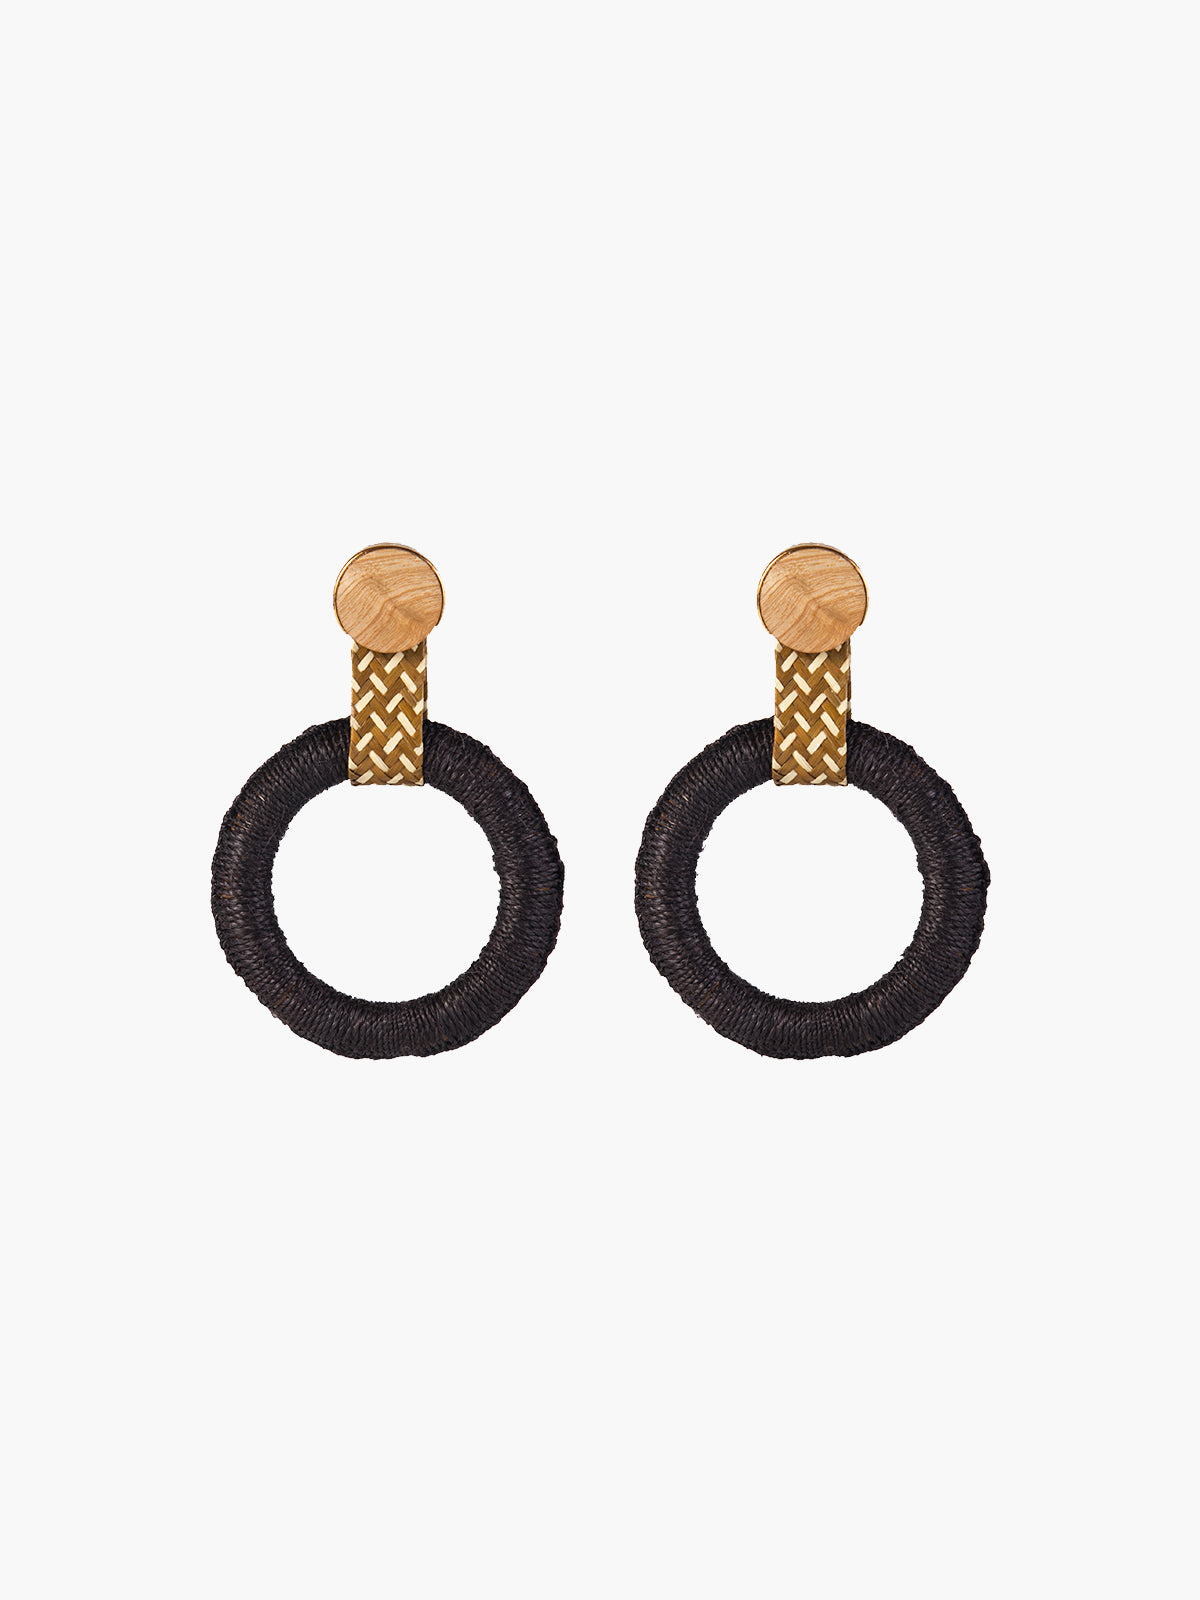 Maguey Hoops | Black Maguey Hoops | Black